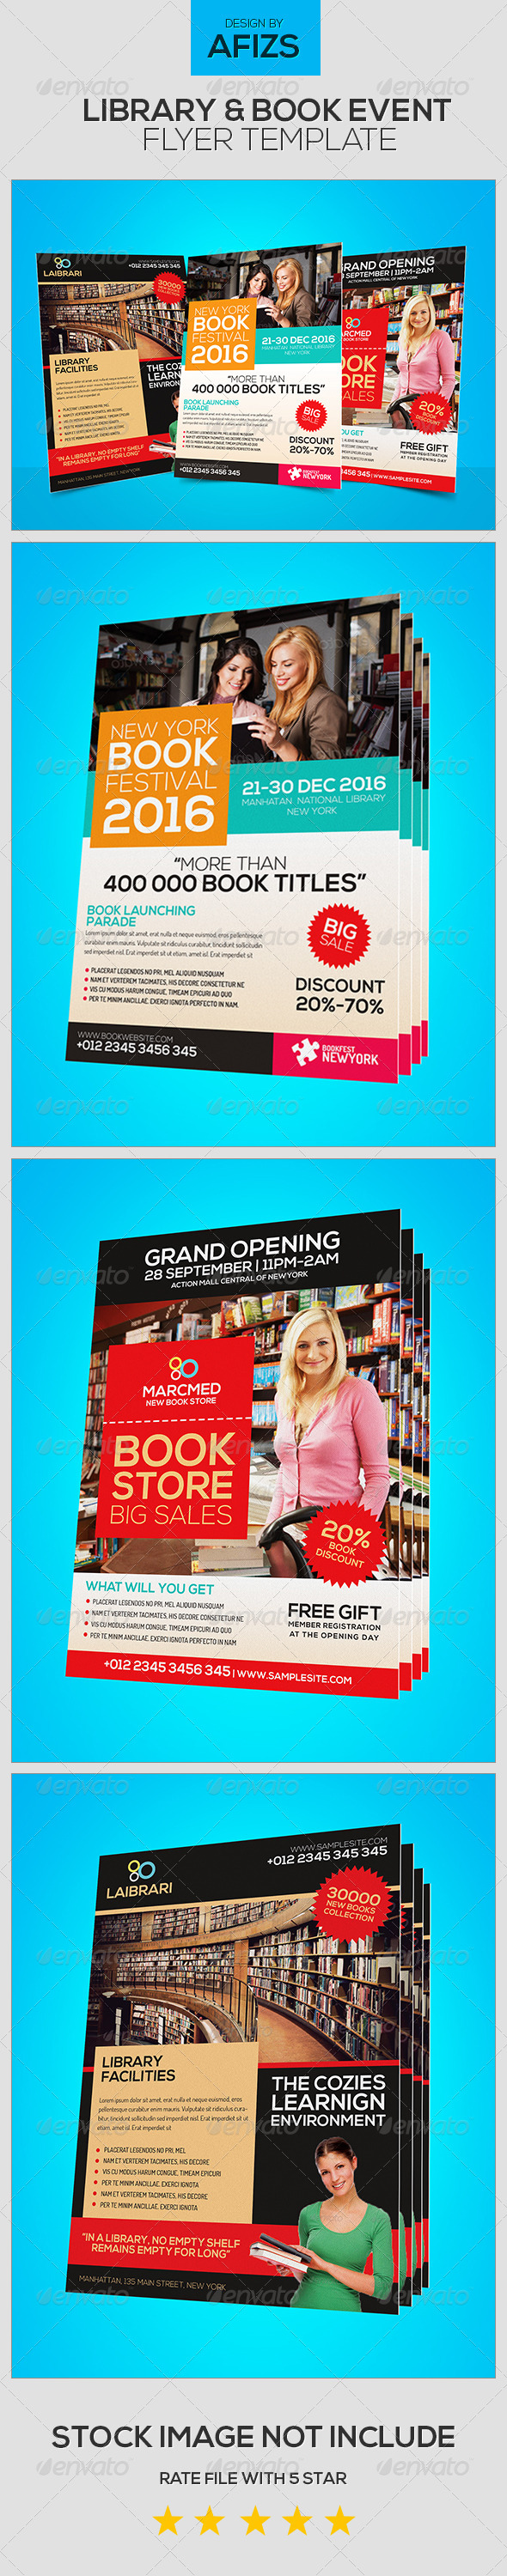 GraphicRiver Library & Book Event Flyer 5532719